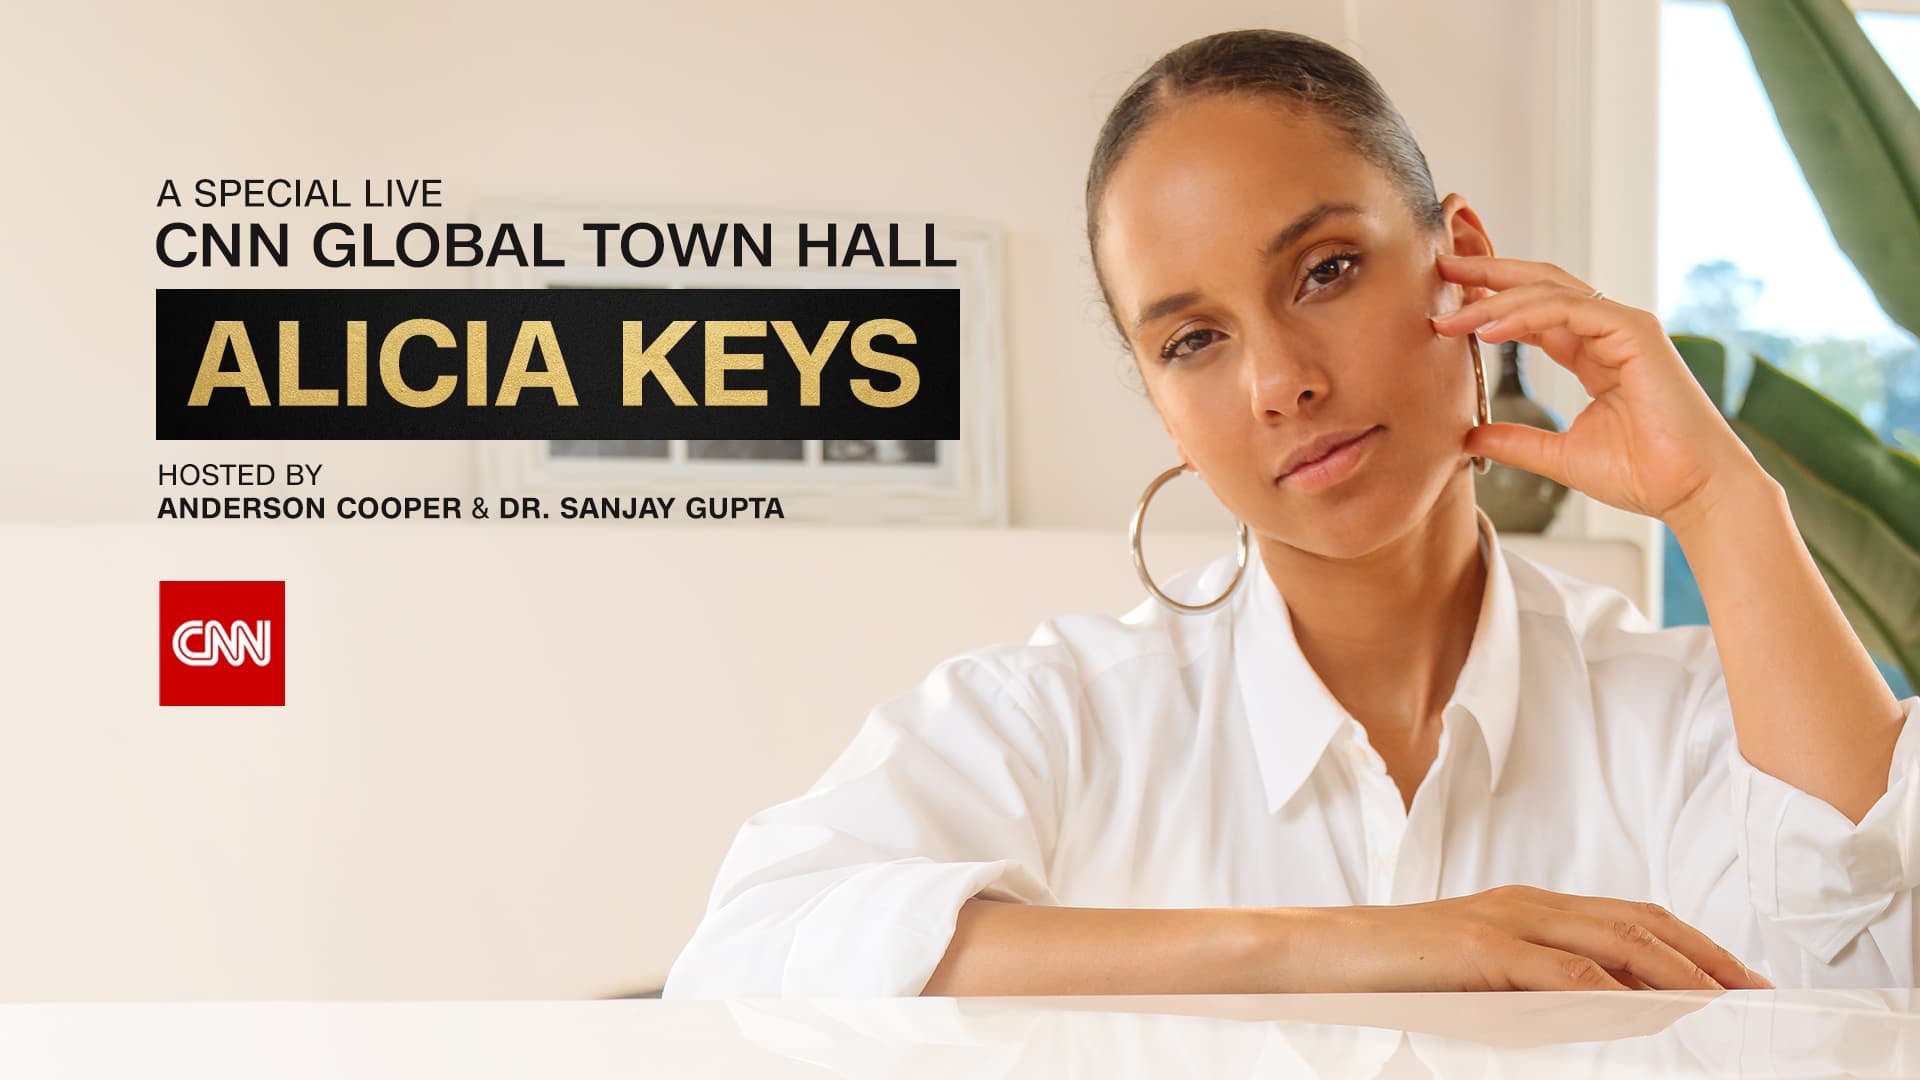 CNN Hosts A Special Global Town Hall Featuring Alicia Keyes